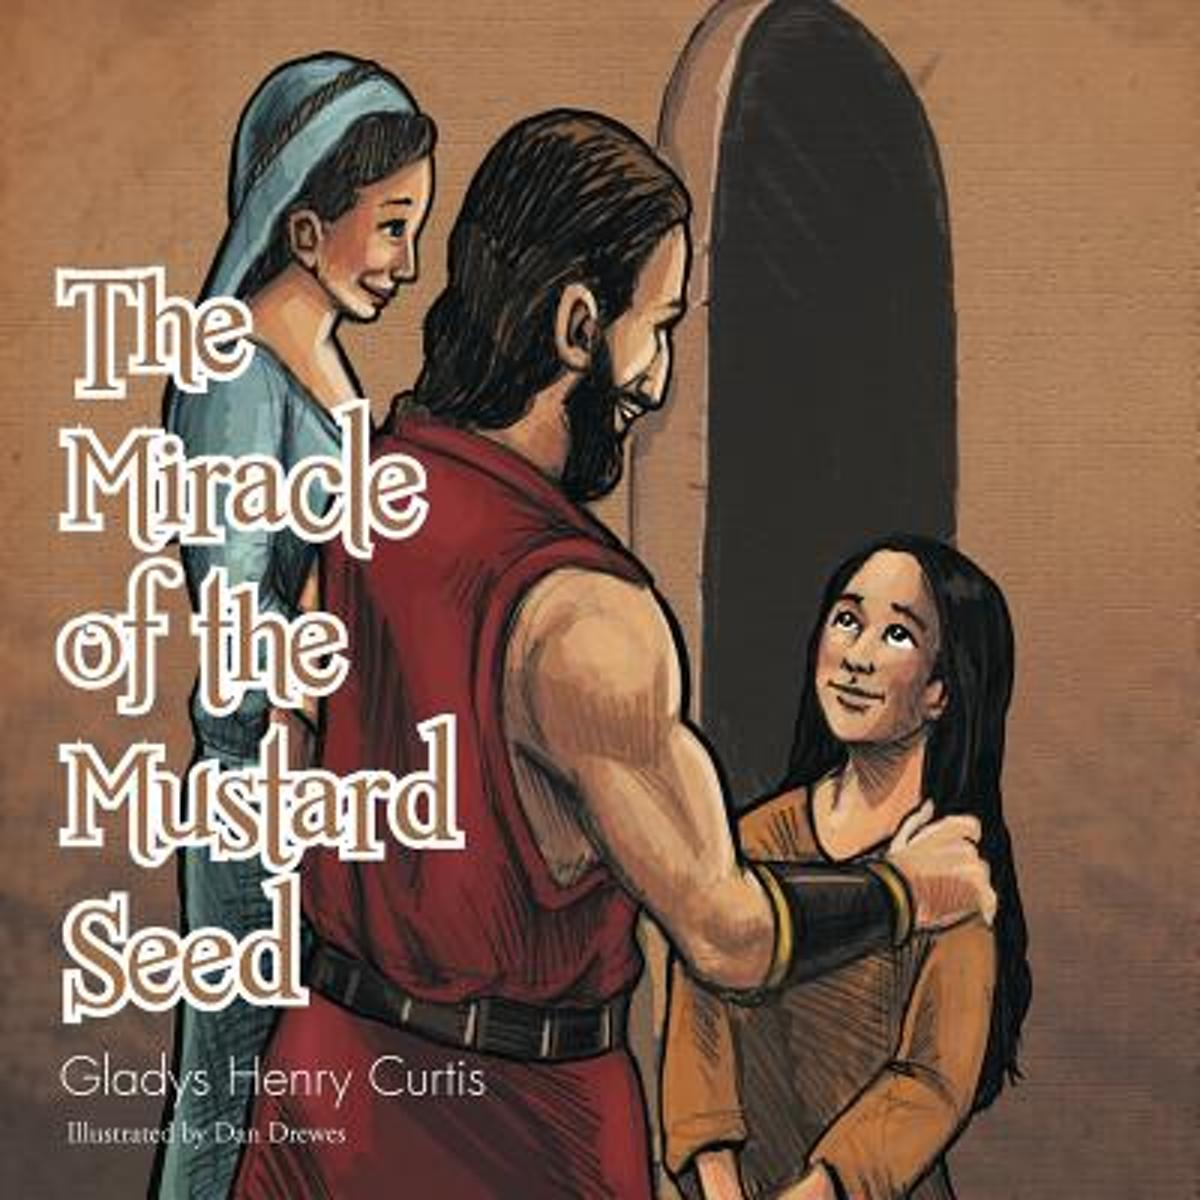 The Miracle of the Mustard Seed